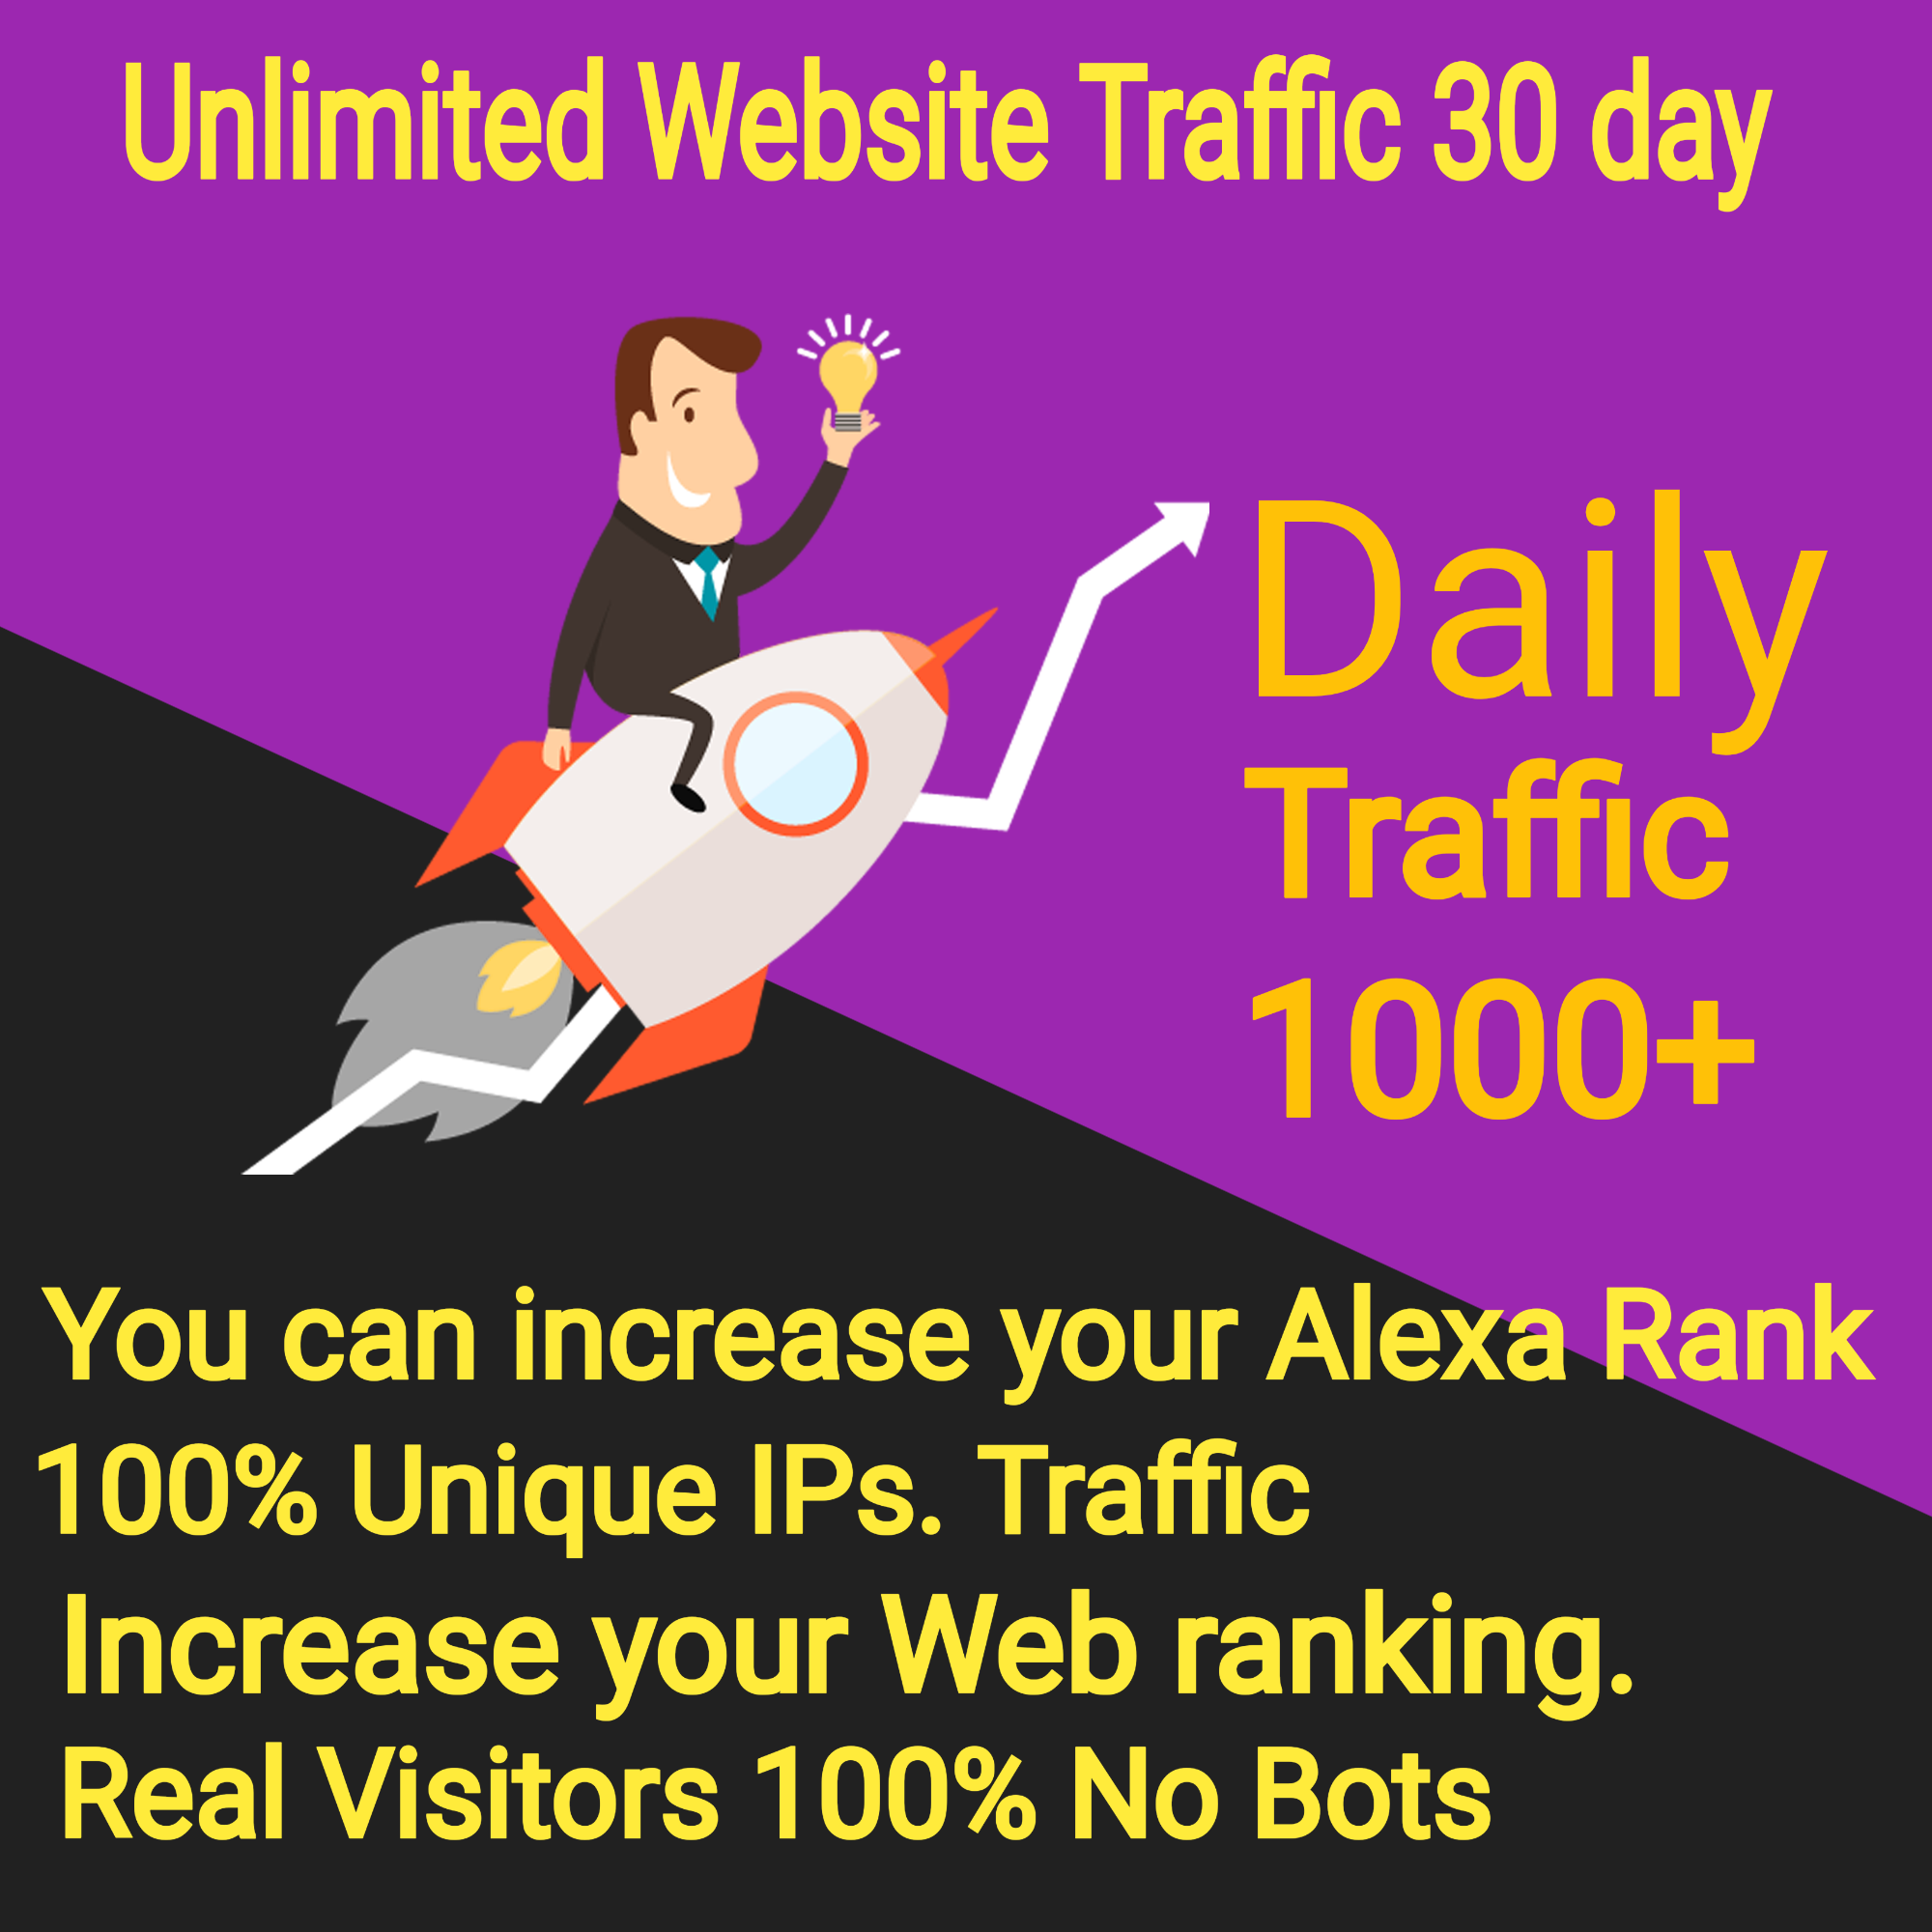 UNLIMITED TARGETED Web Traffic From Worldwide for your Website 30 day